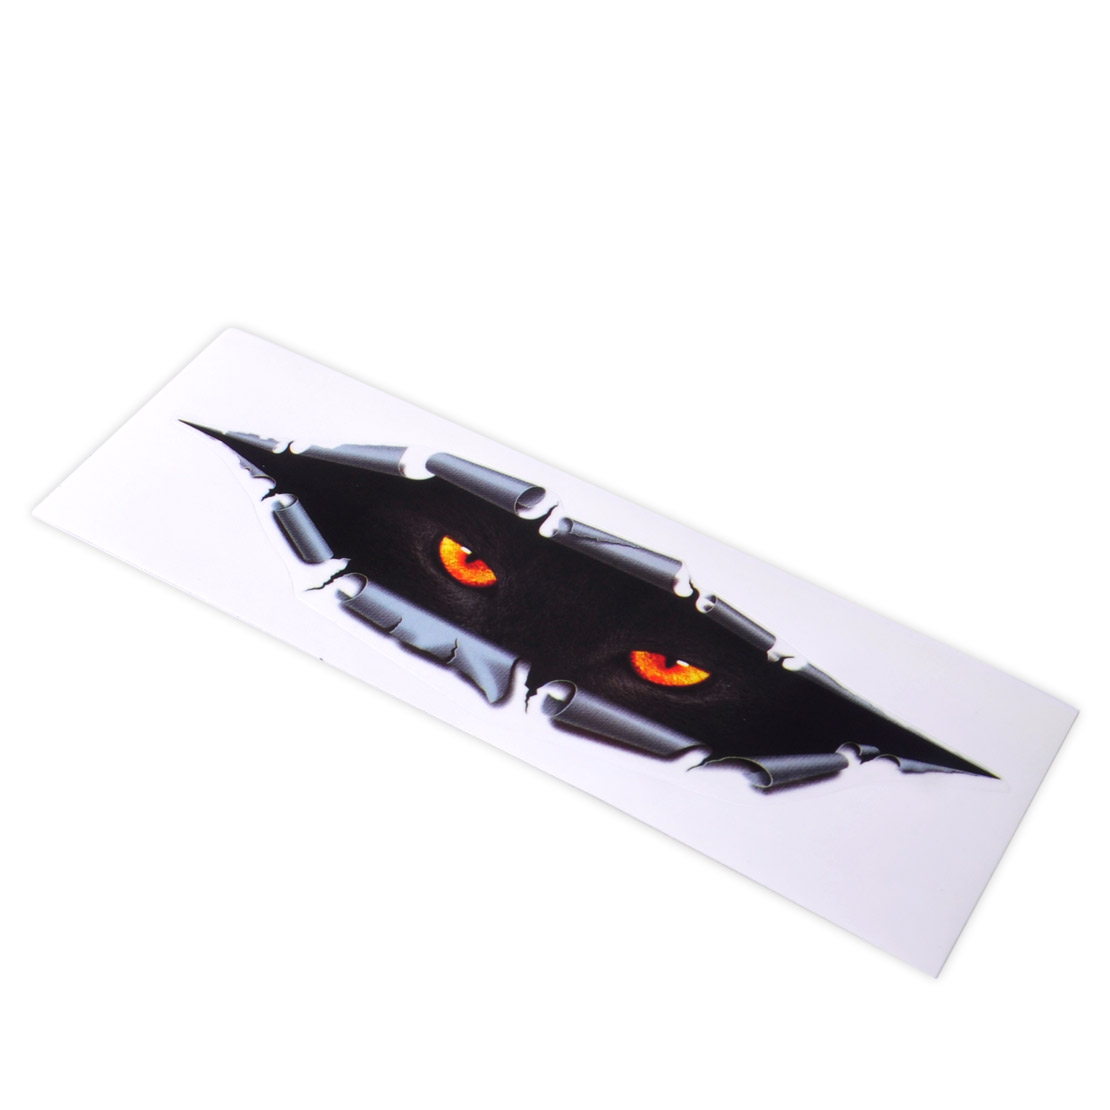 CITALL 1 Pc Car styling Lucu 3D Simulasi Eye Peeking Monster Leopard Waterproof Sticker Decal Auto Car Motorcycle Window